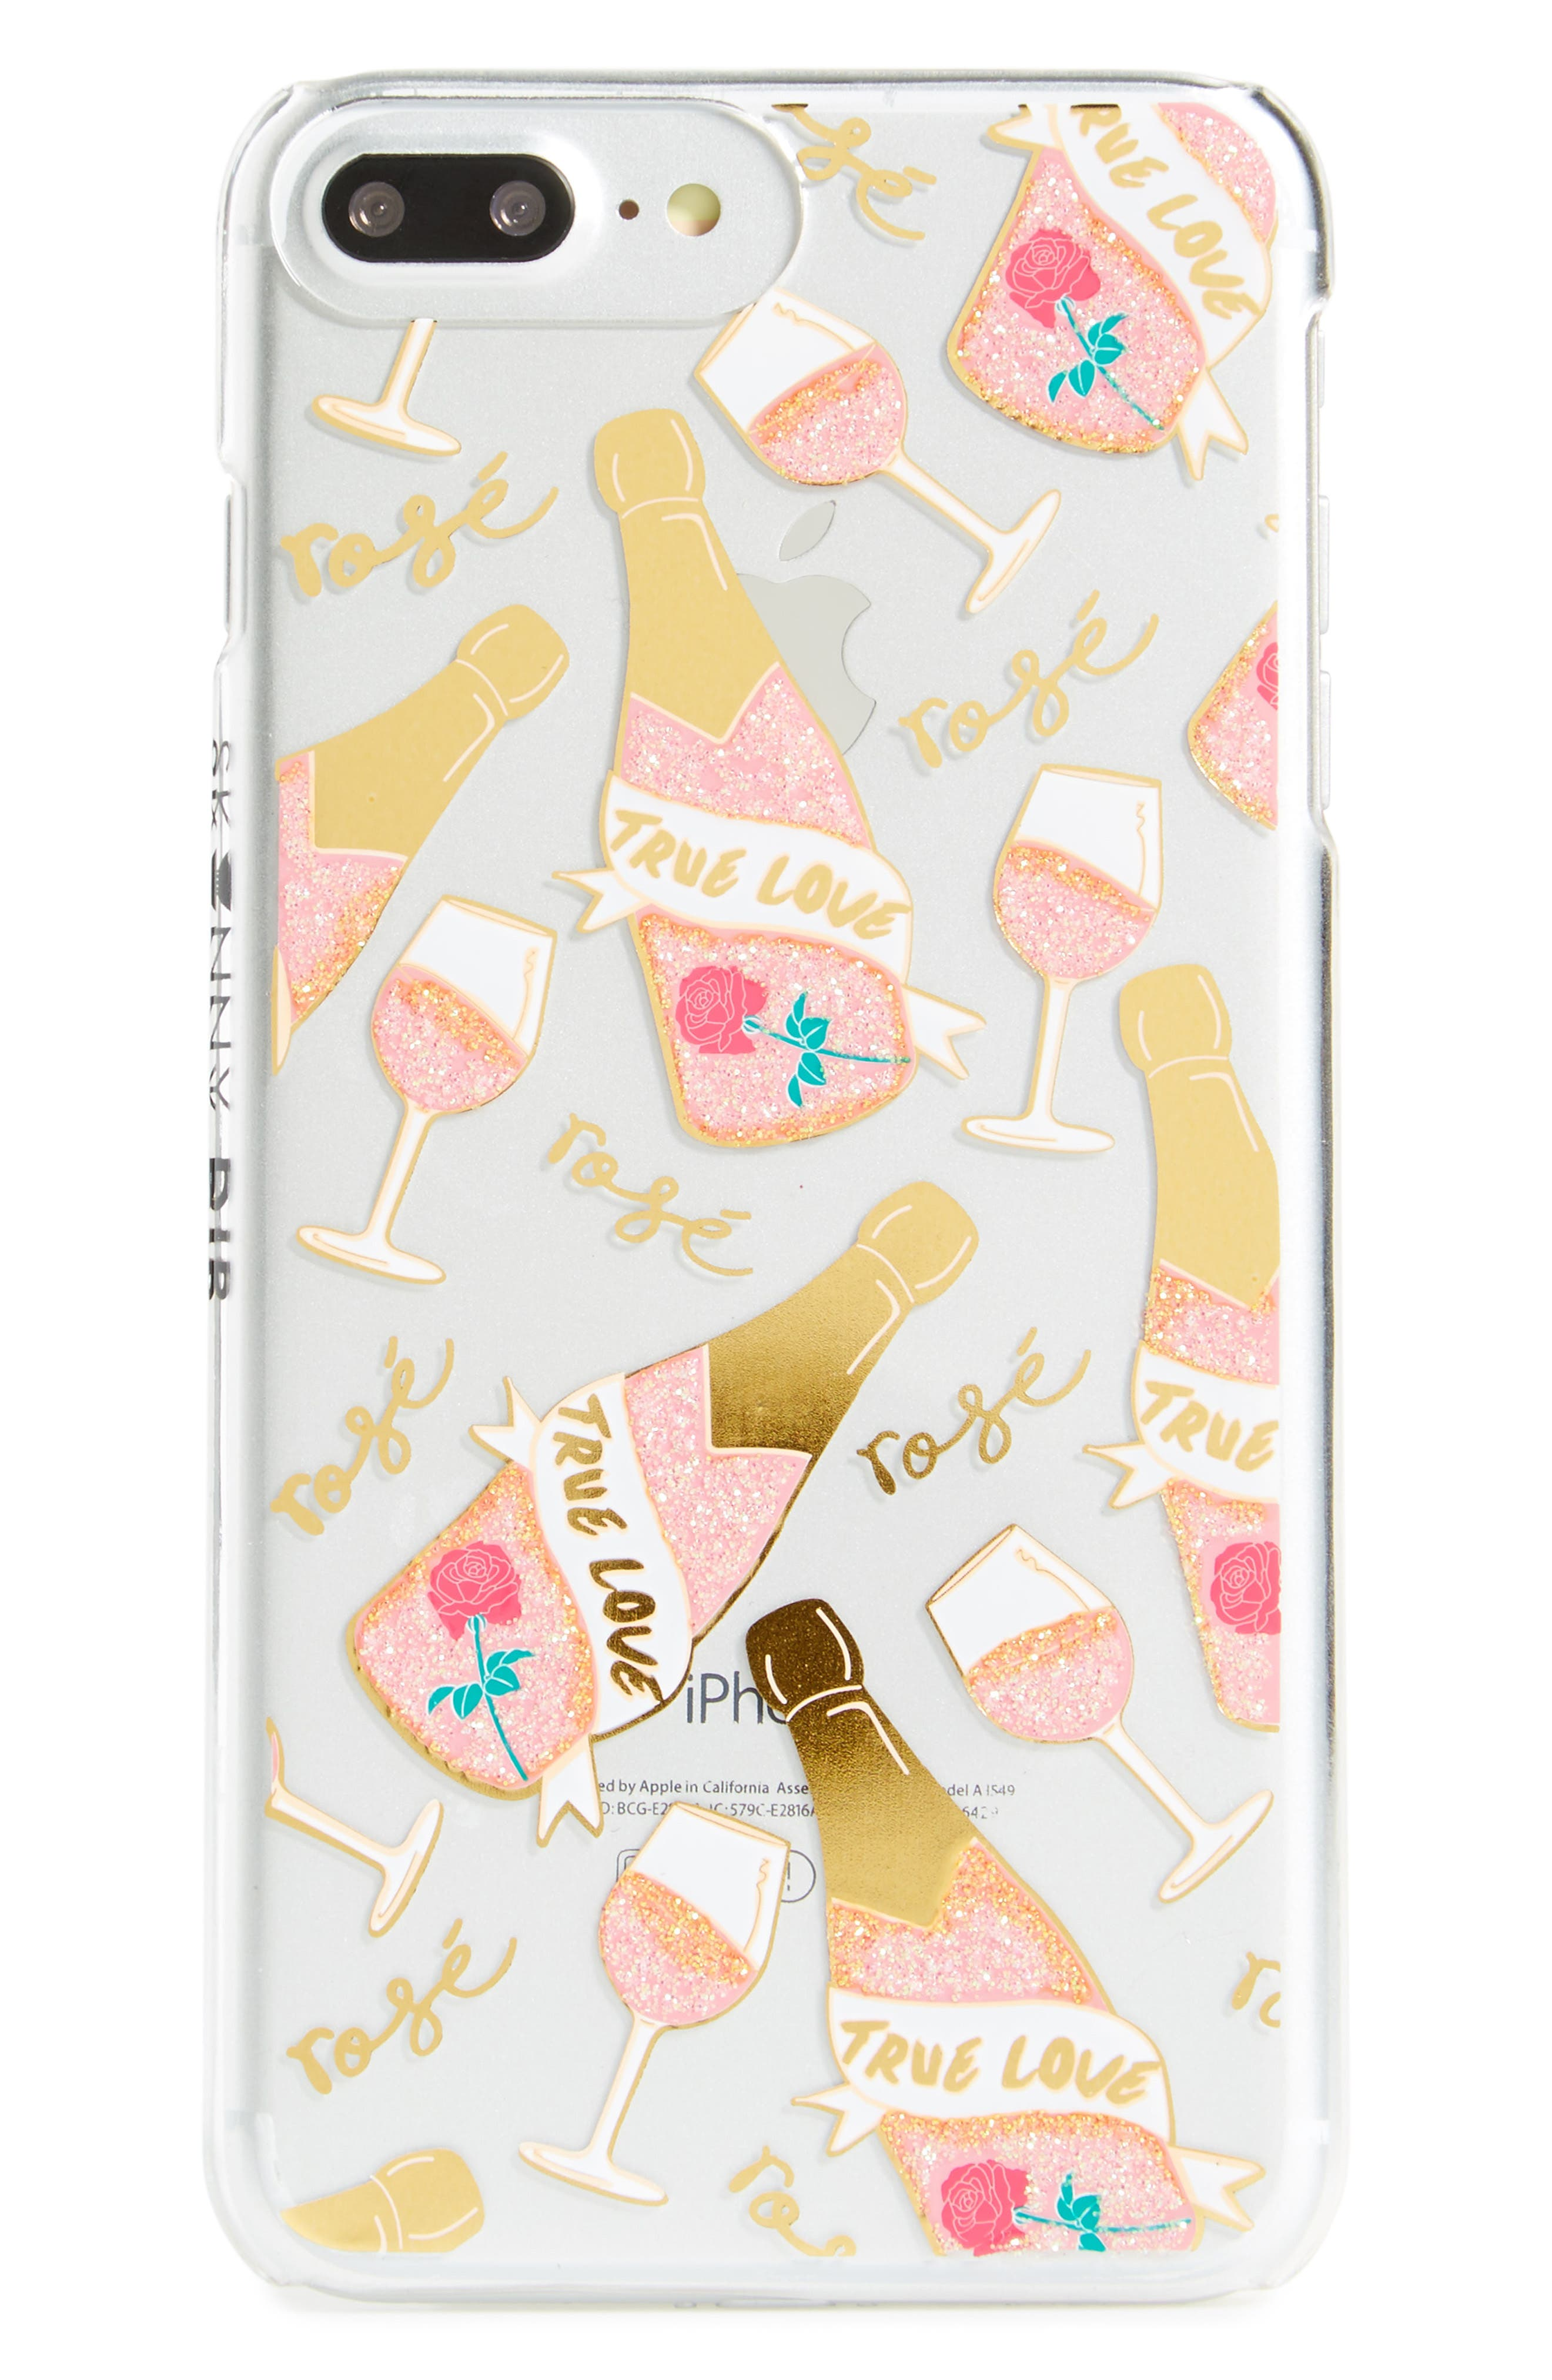 SKINNYDIP True Love iPhone 6/7 & 6/7 Plus Case